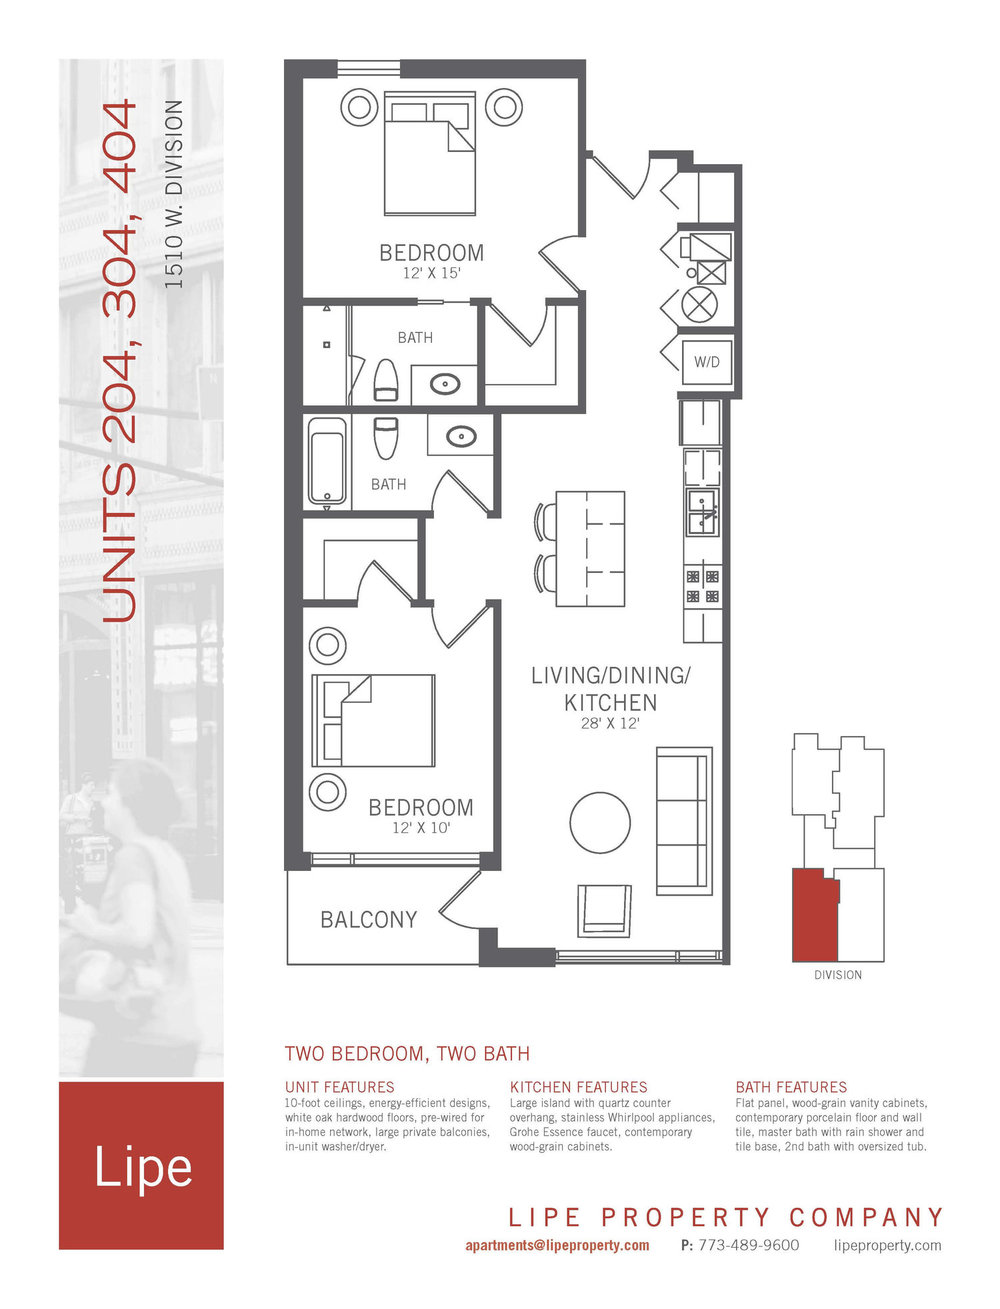 apartment-for-rent-1510-W-Division-Chicago-204,304,404-Floor-Plan.jpg